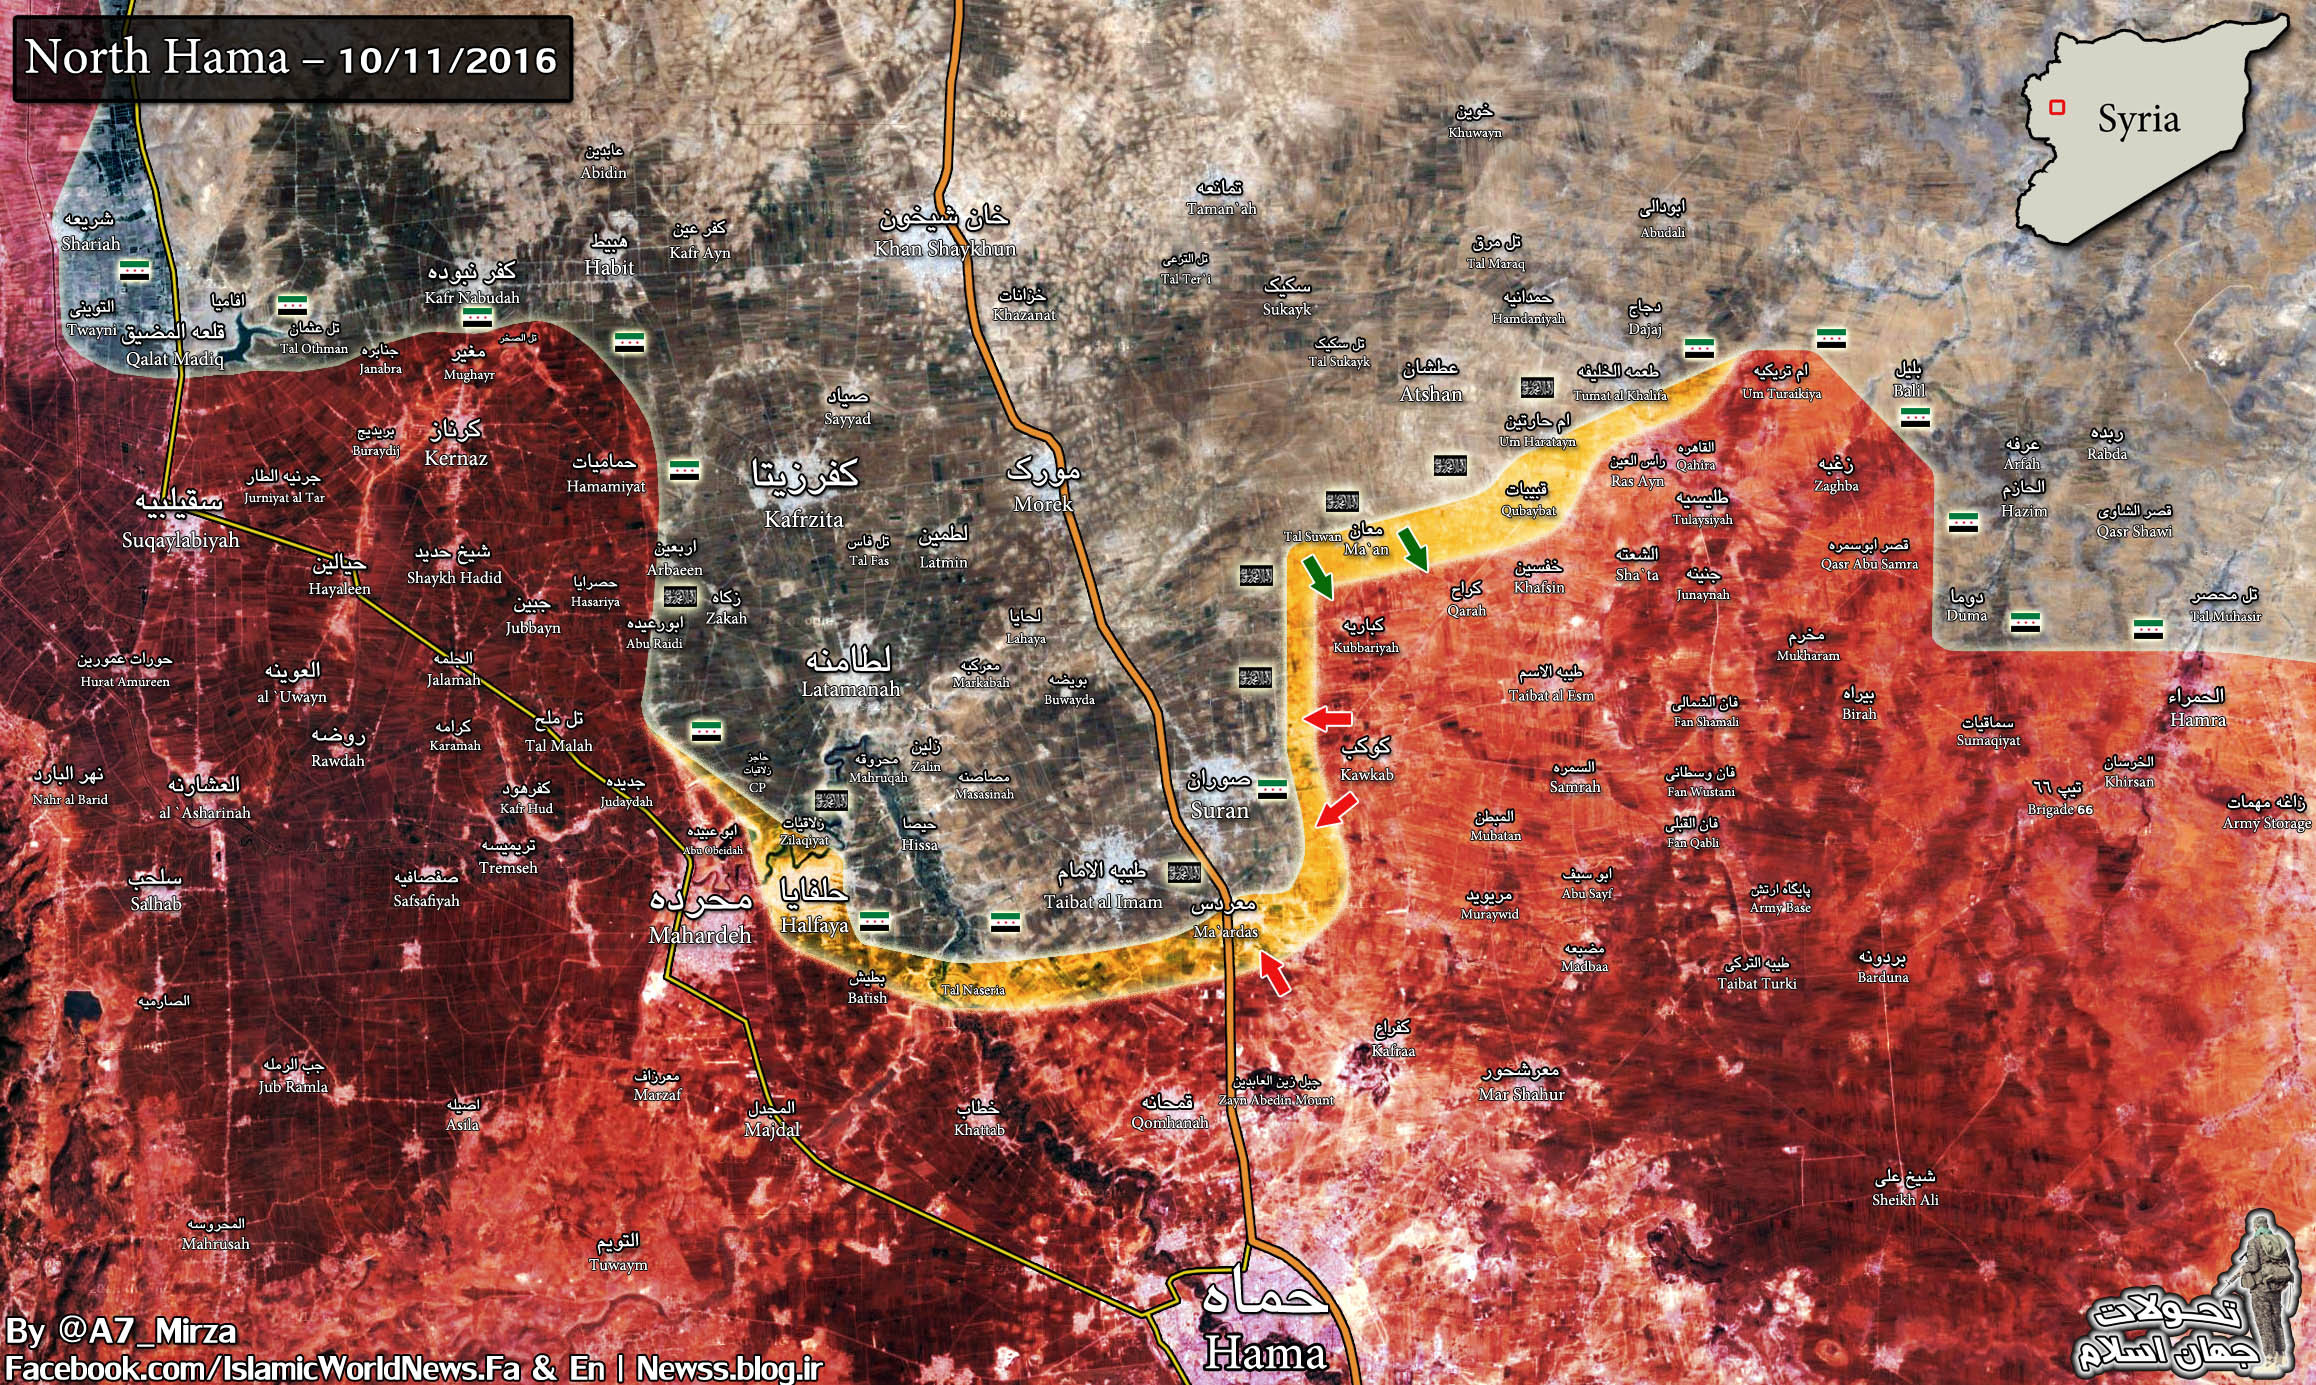 Syrian Army Repelled Major Militant Attack in Northern Hama